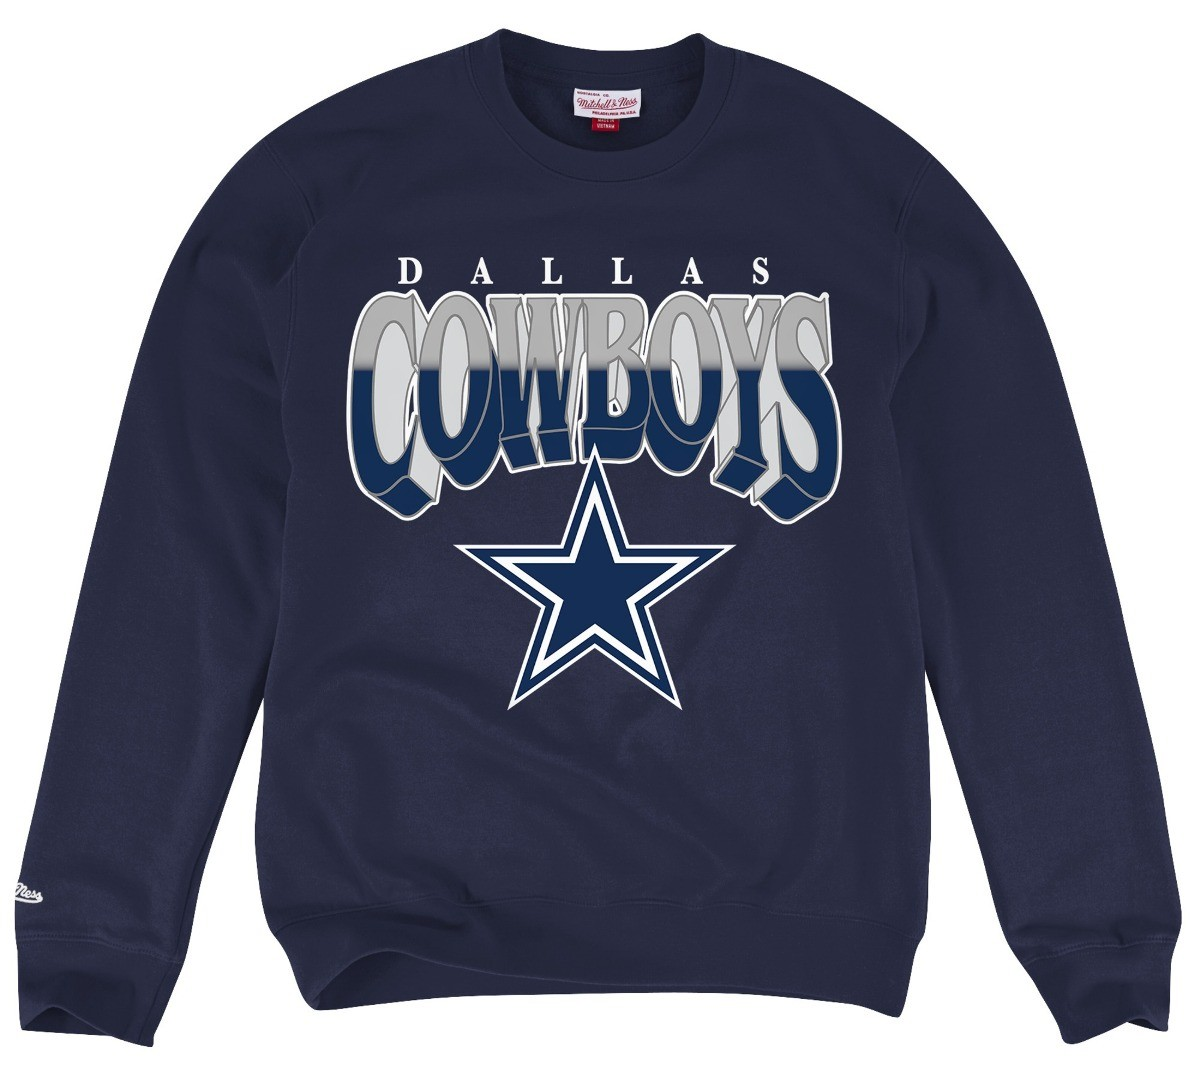 info for e20fb b5db6 Dallas Cowboys Mitchell & Ness NFL